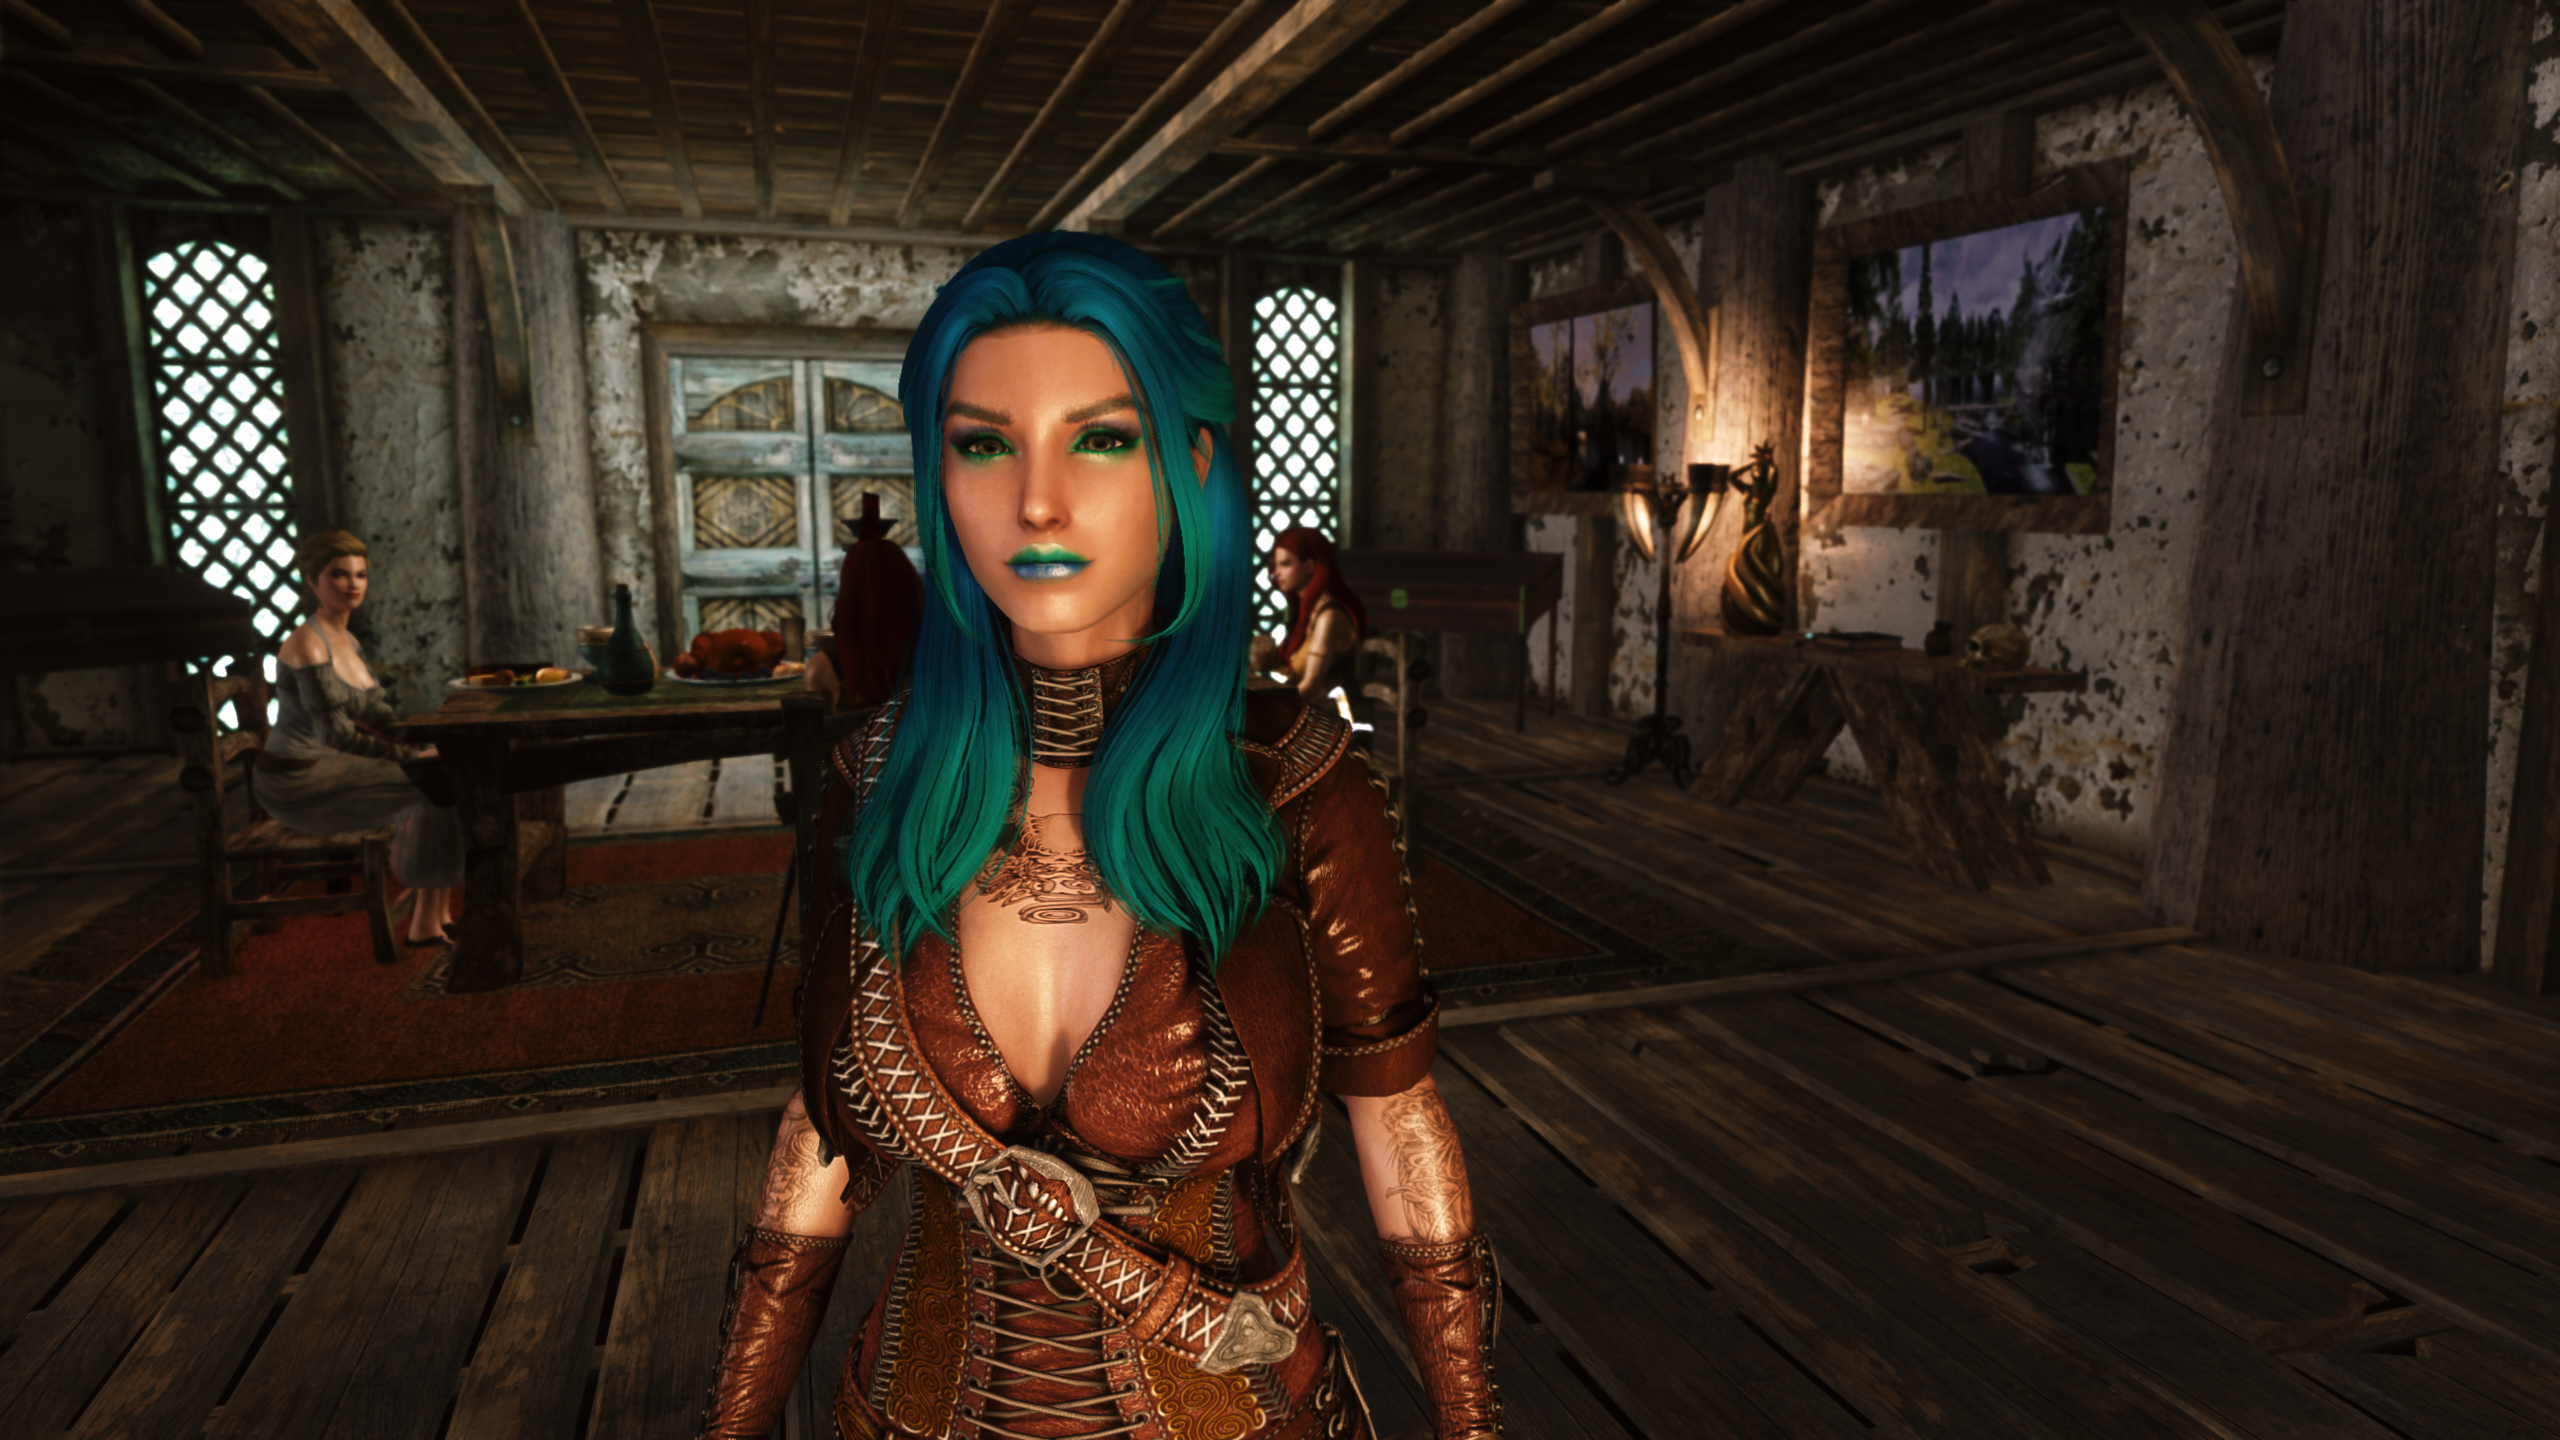 My ingame character